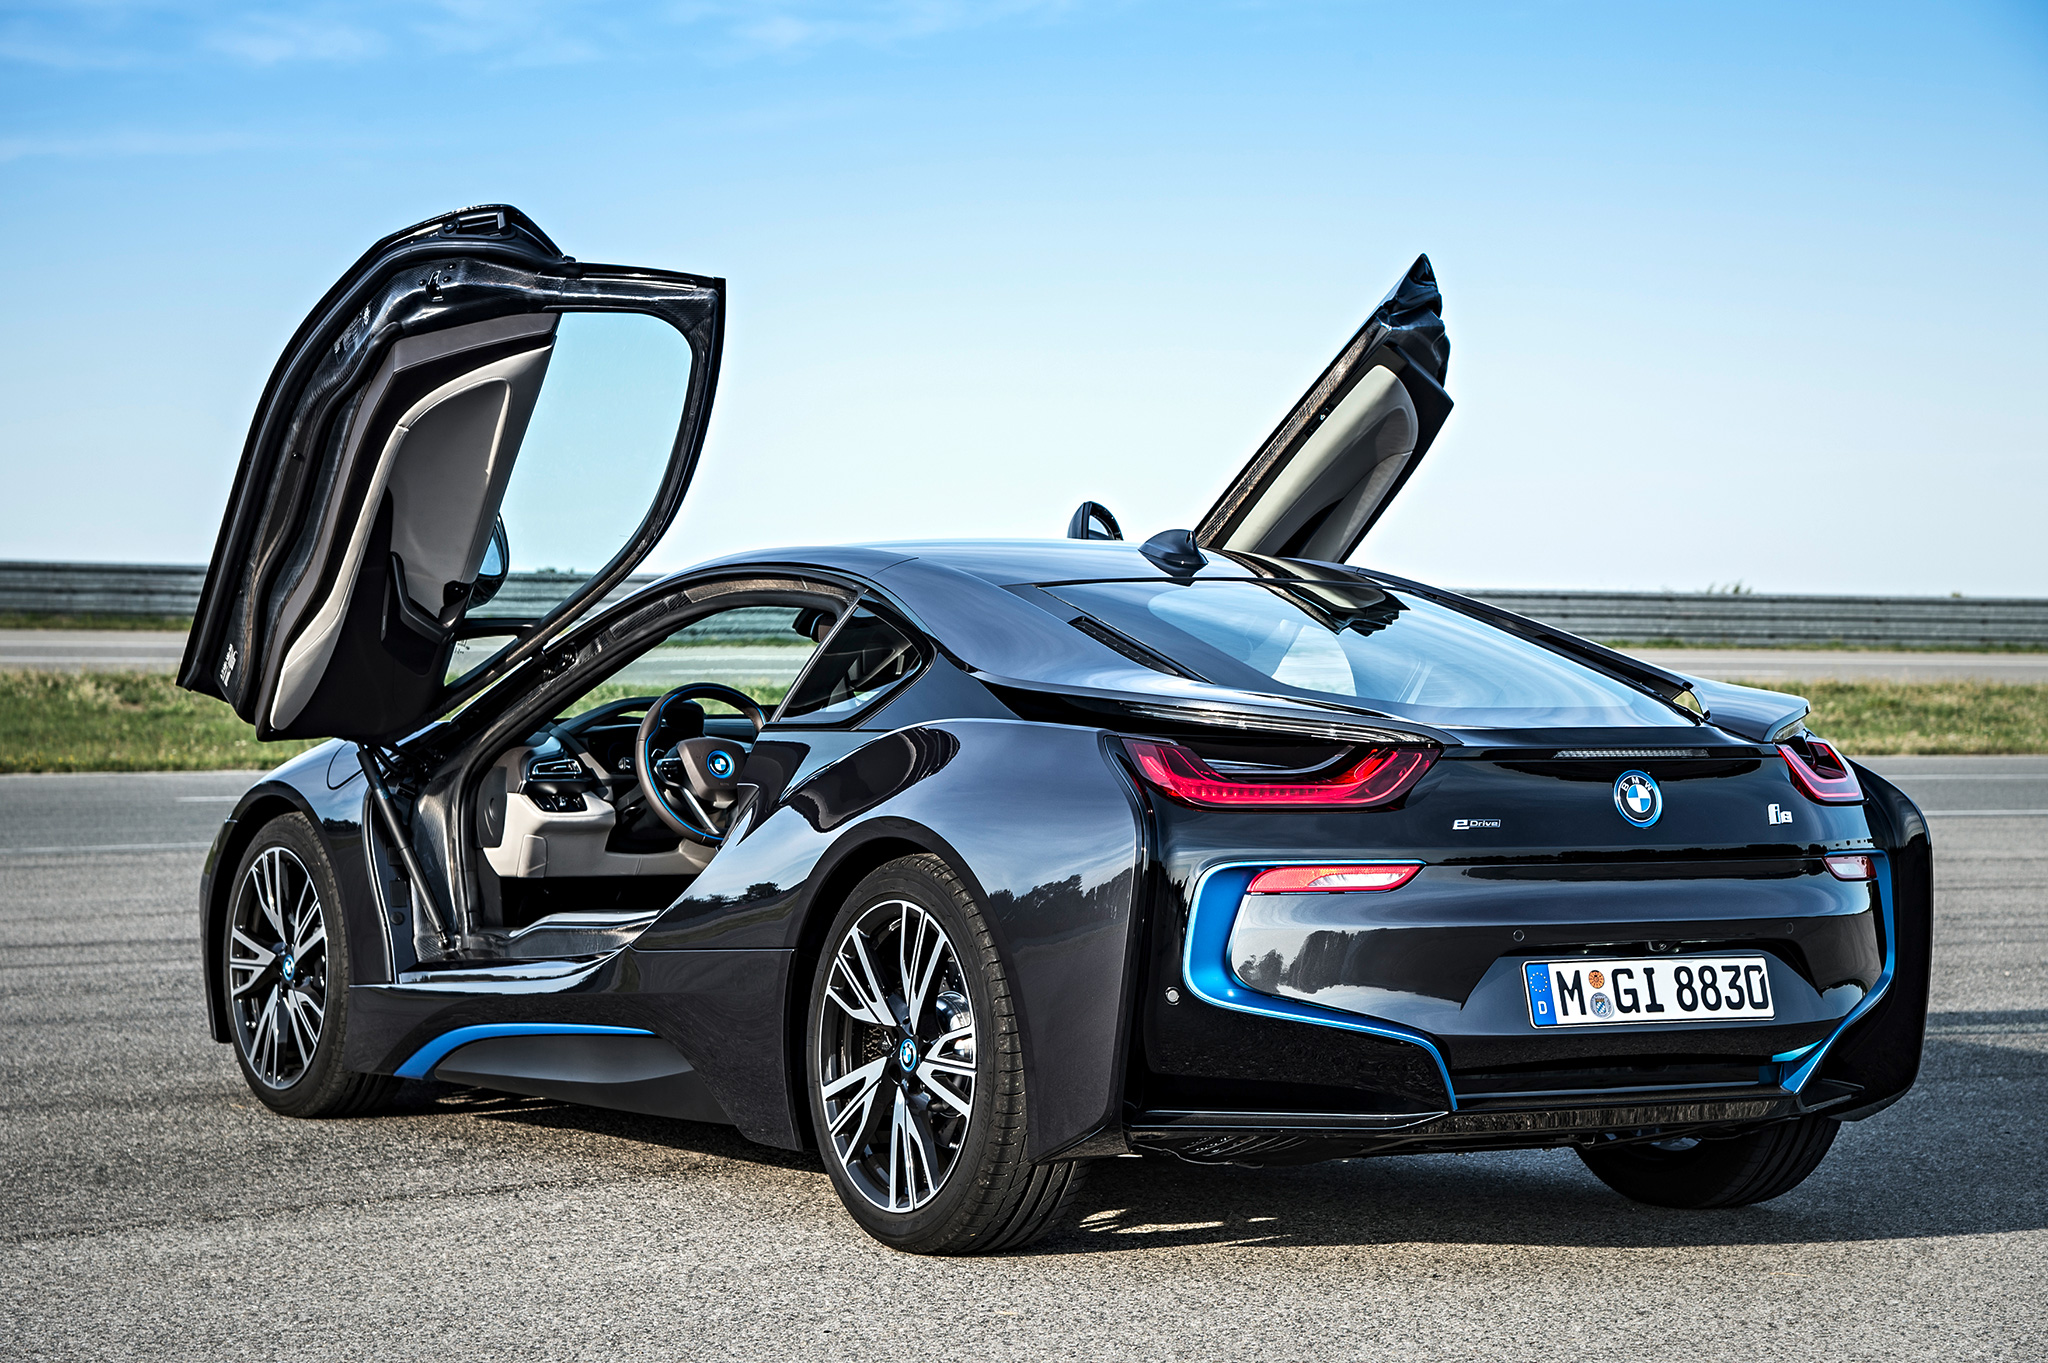 The Bmw I8 Is Over Hyped But That Doesn T Mean It S Not Great